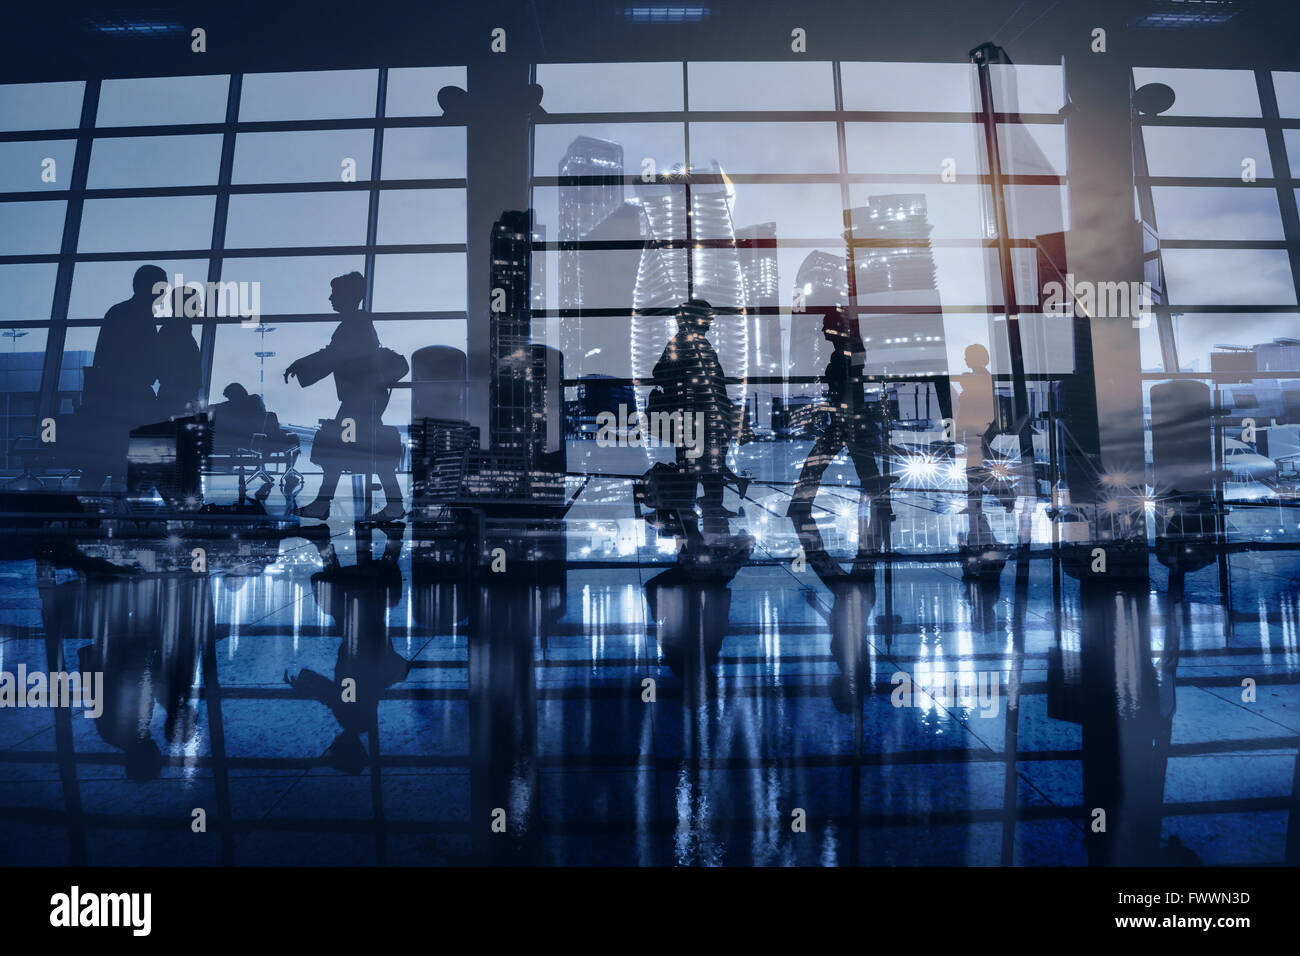 business people walking in modern city, abstract blue urban background, commuters, beautiful double exposure - Stock Image